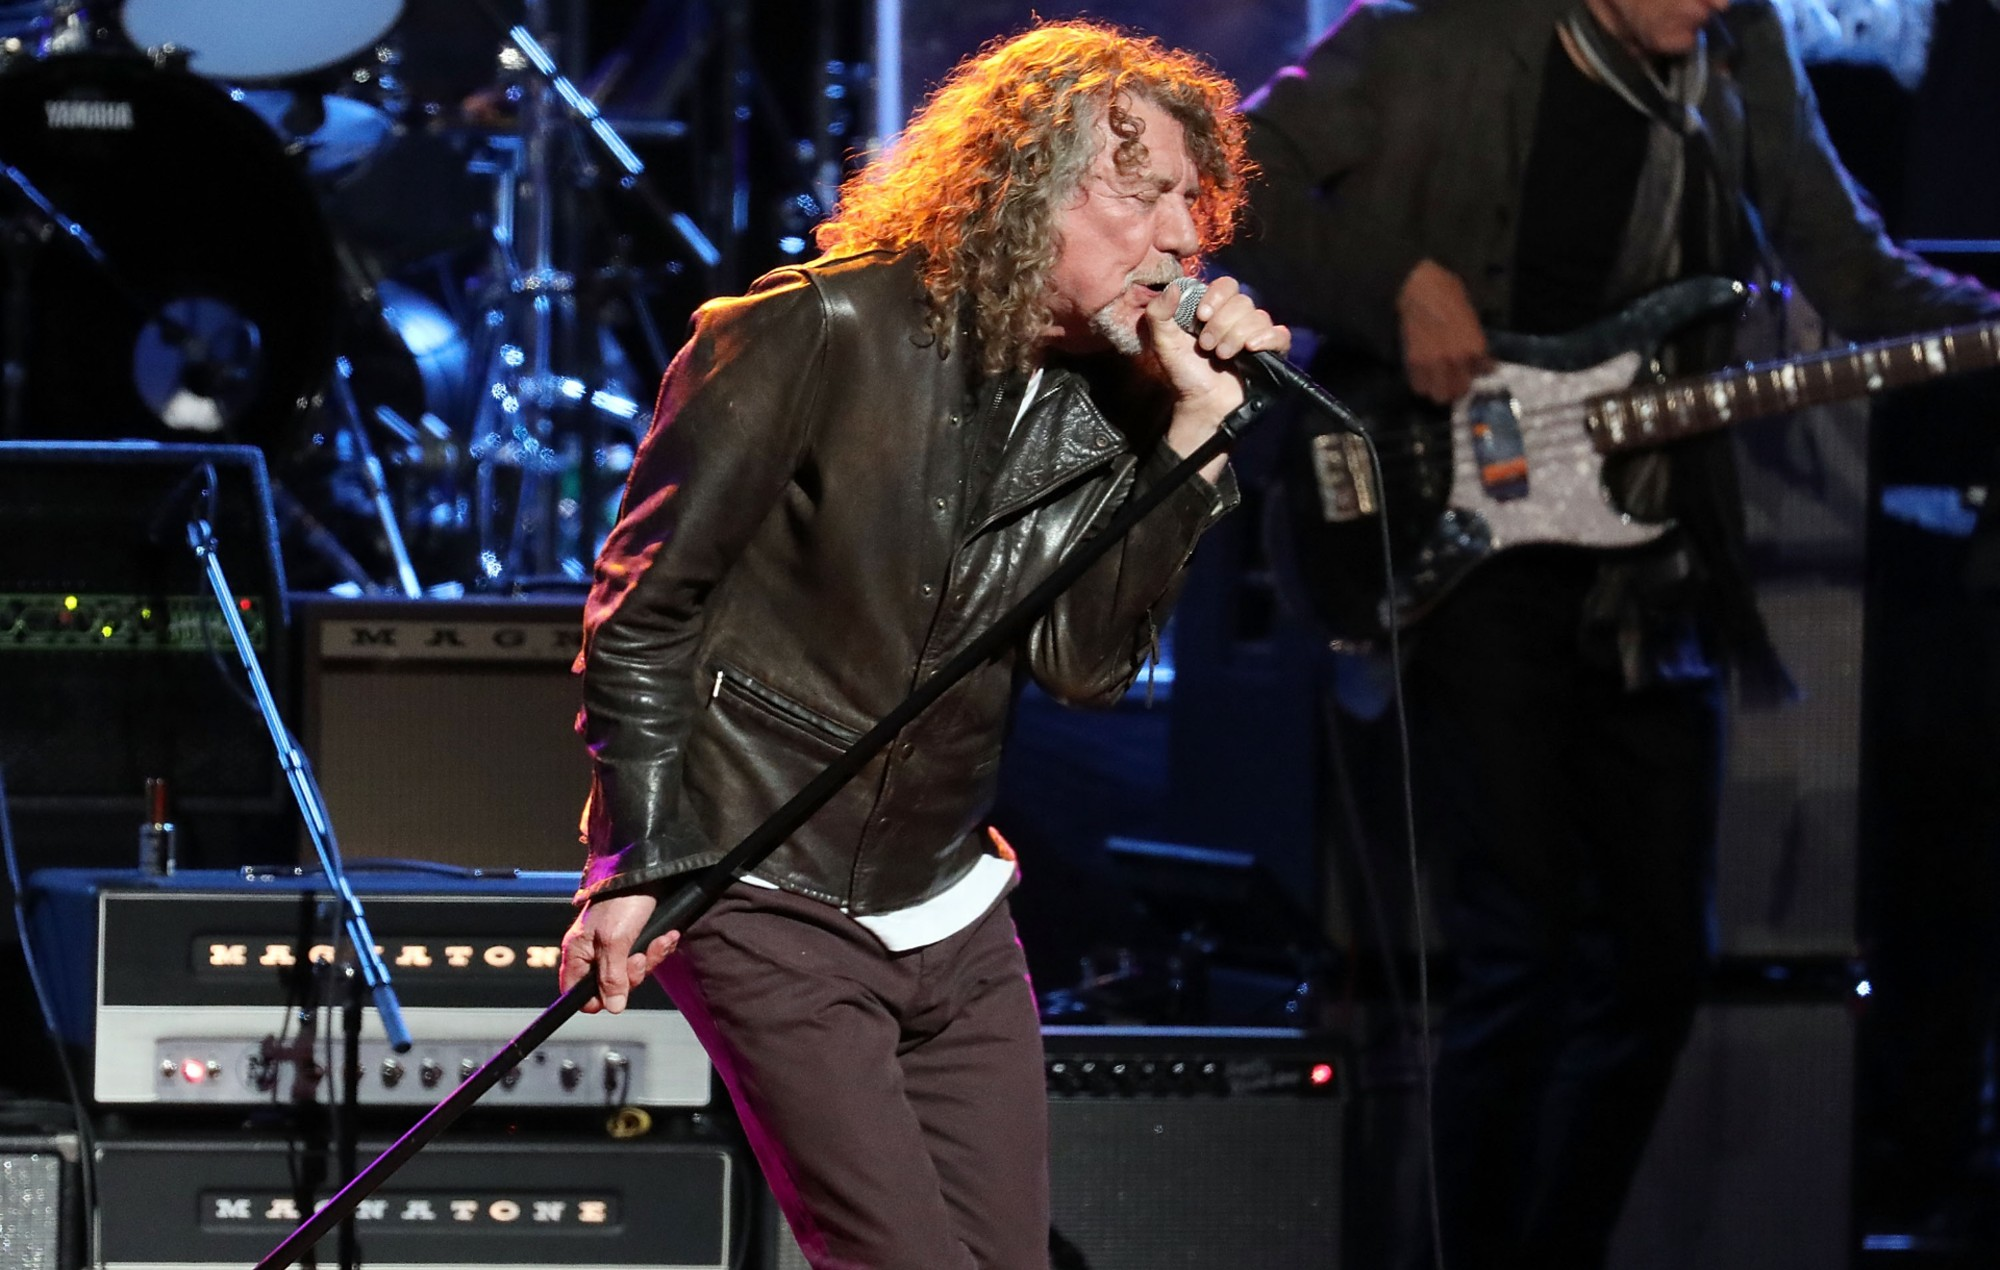 """Robert Plant makes """"generous"""" donation towards frontline medical supplies 